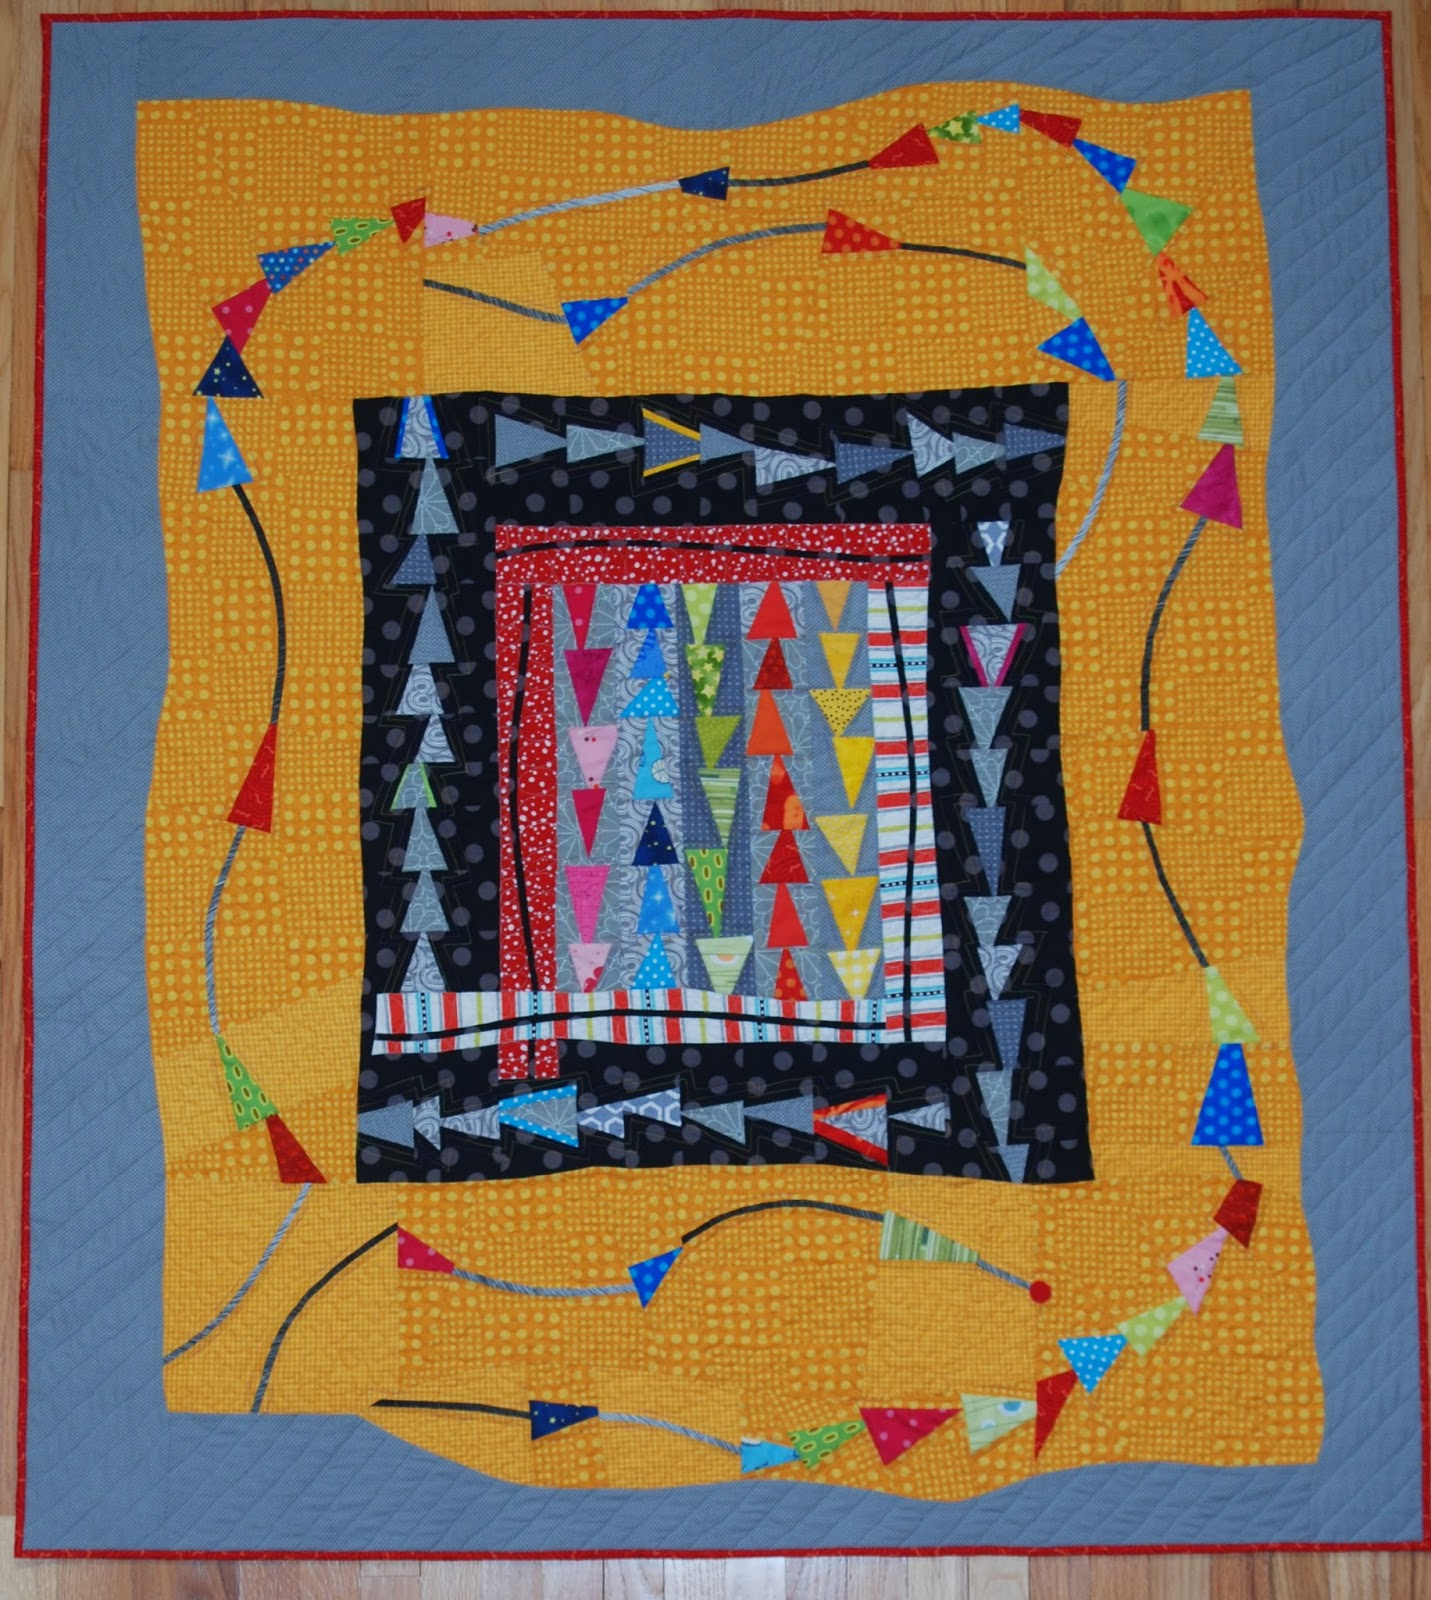 Sunday Farming Quilter My Modern Quilt Flying Kite Tails Will Be